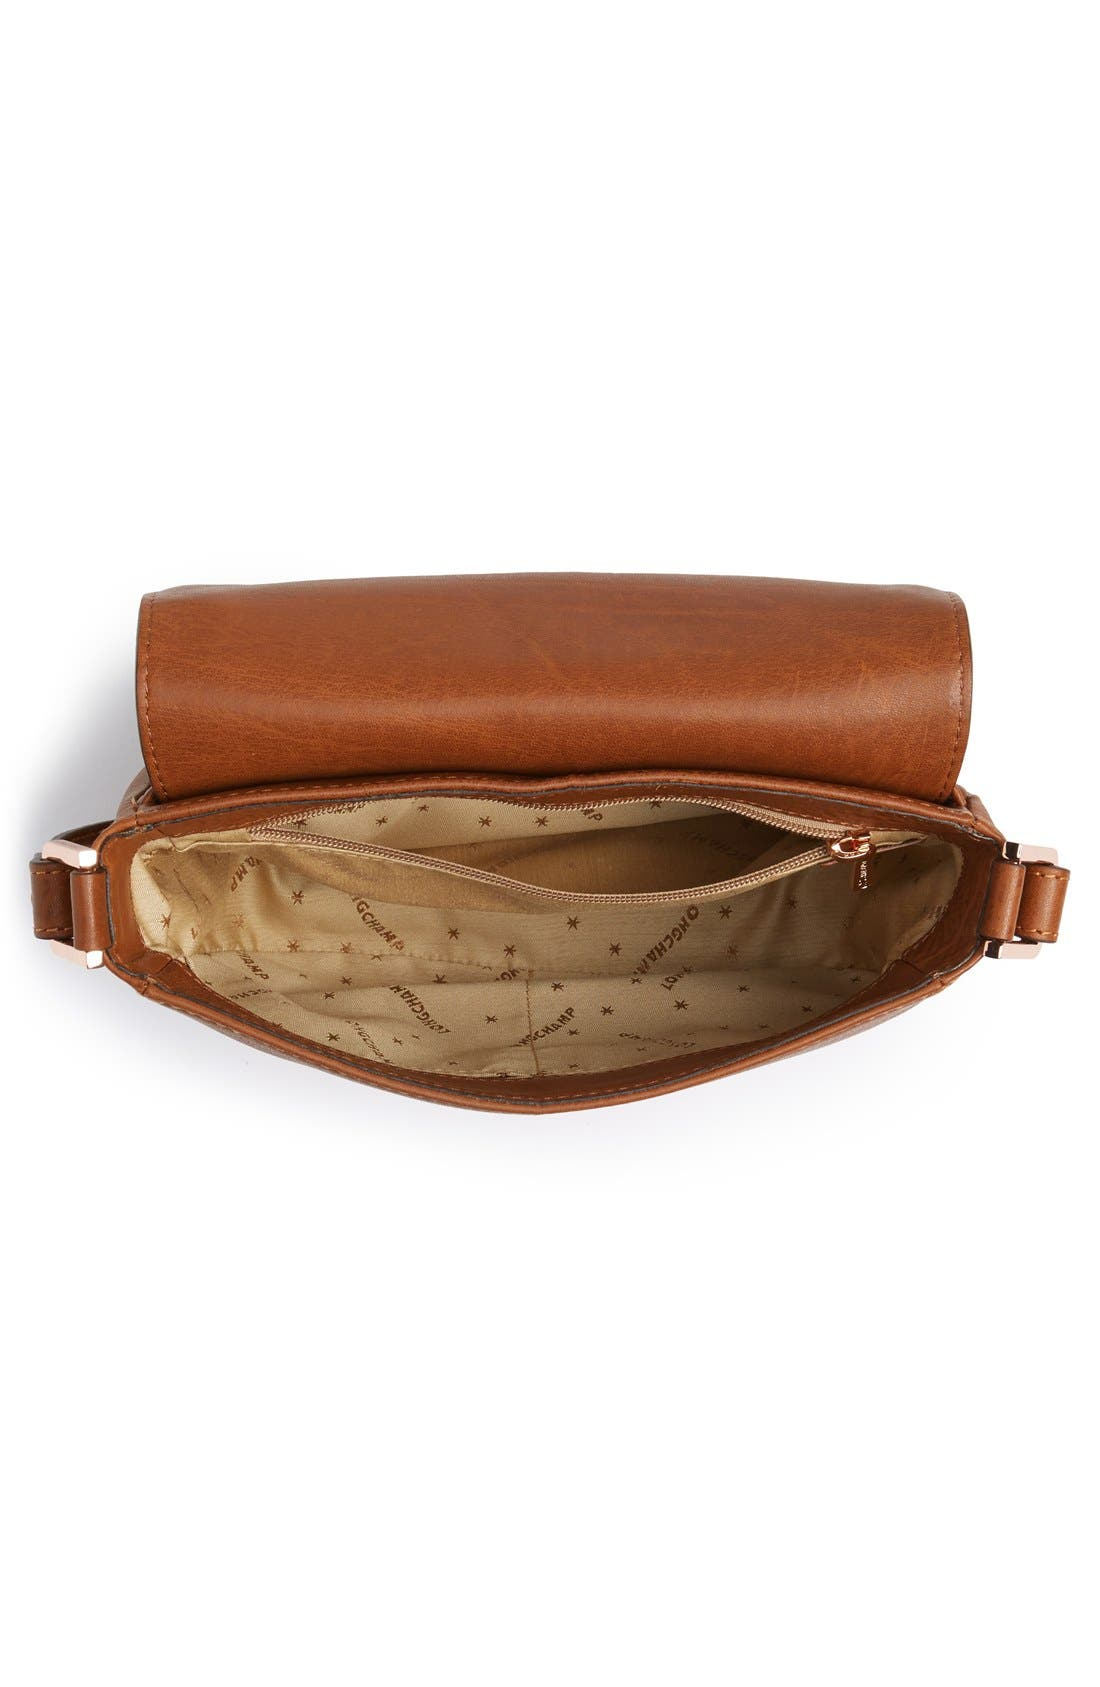 'Small Mystery' Leather Crossbody Bag,                             Alternate thumbnail 5, color,